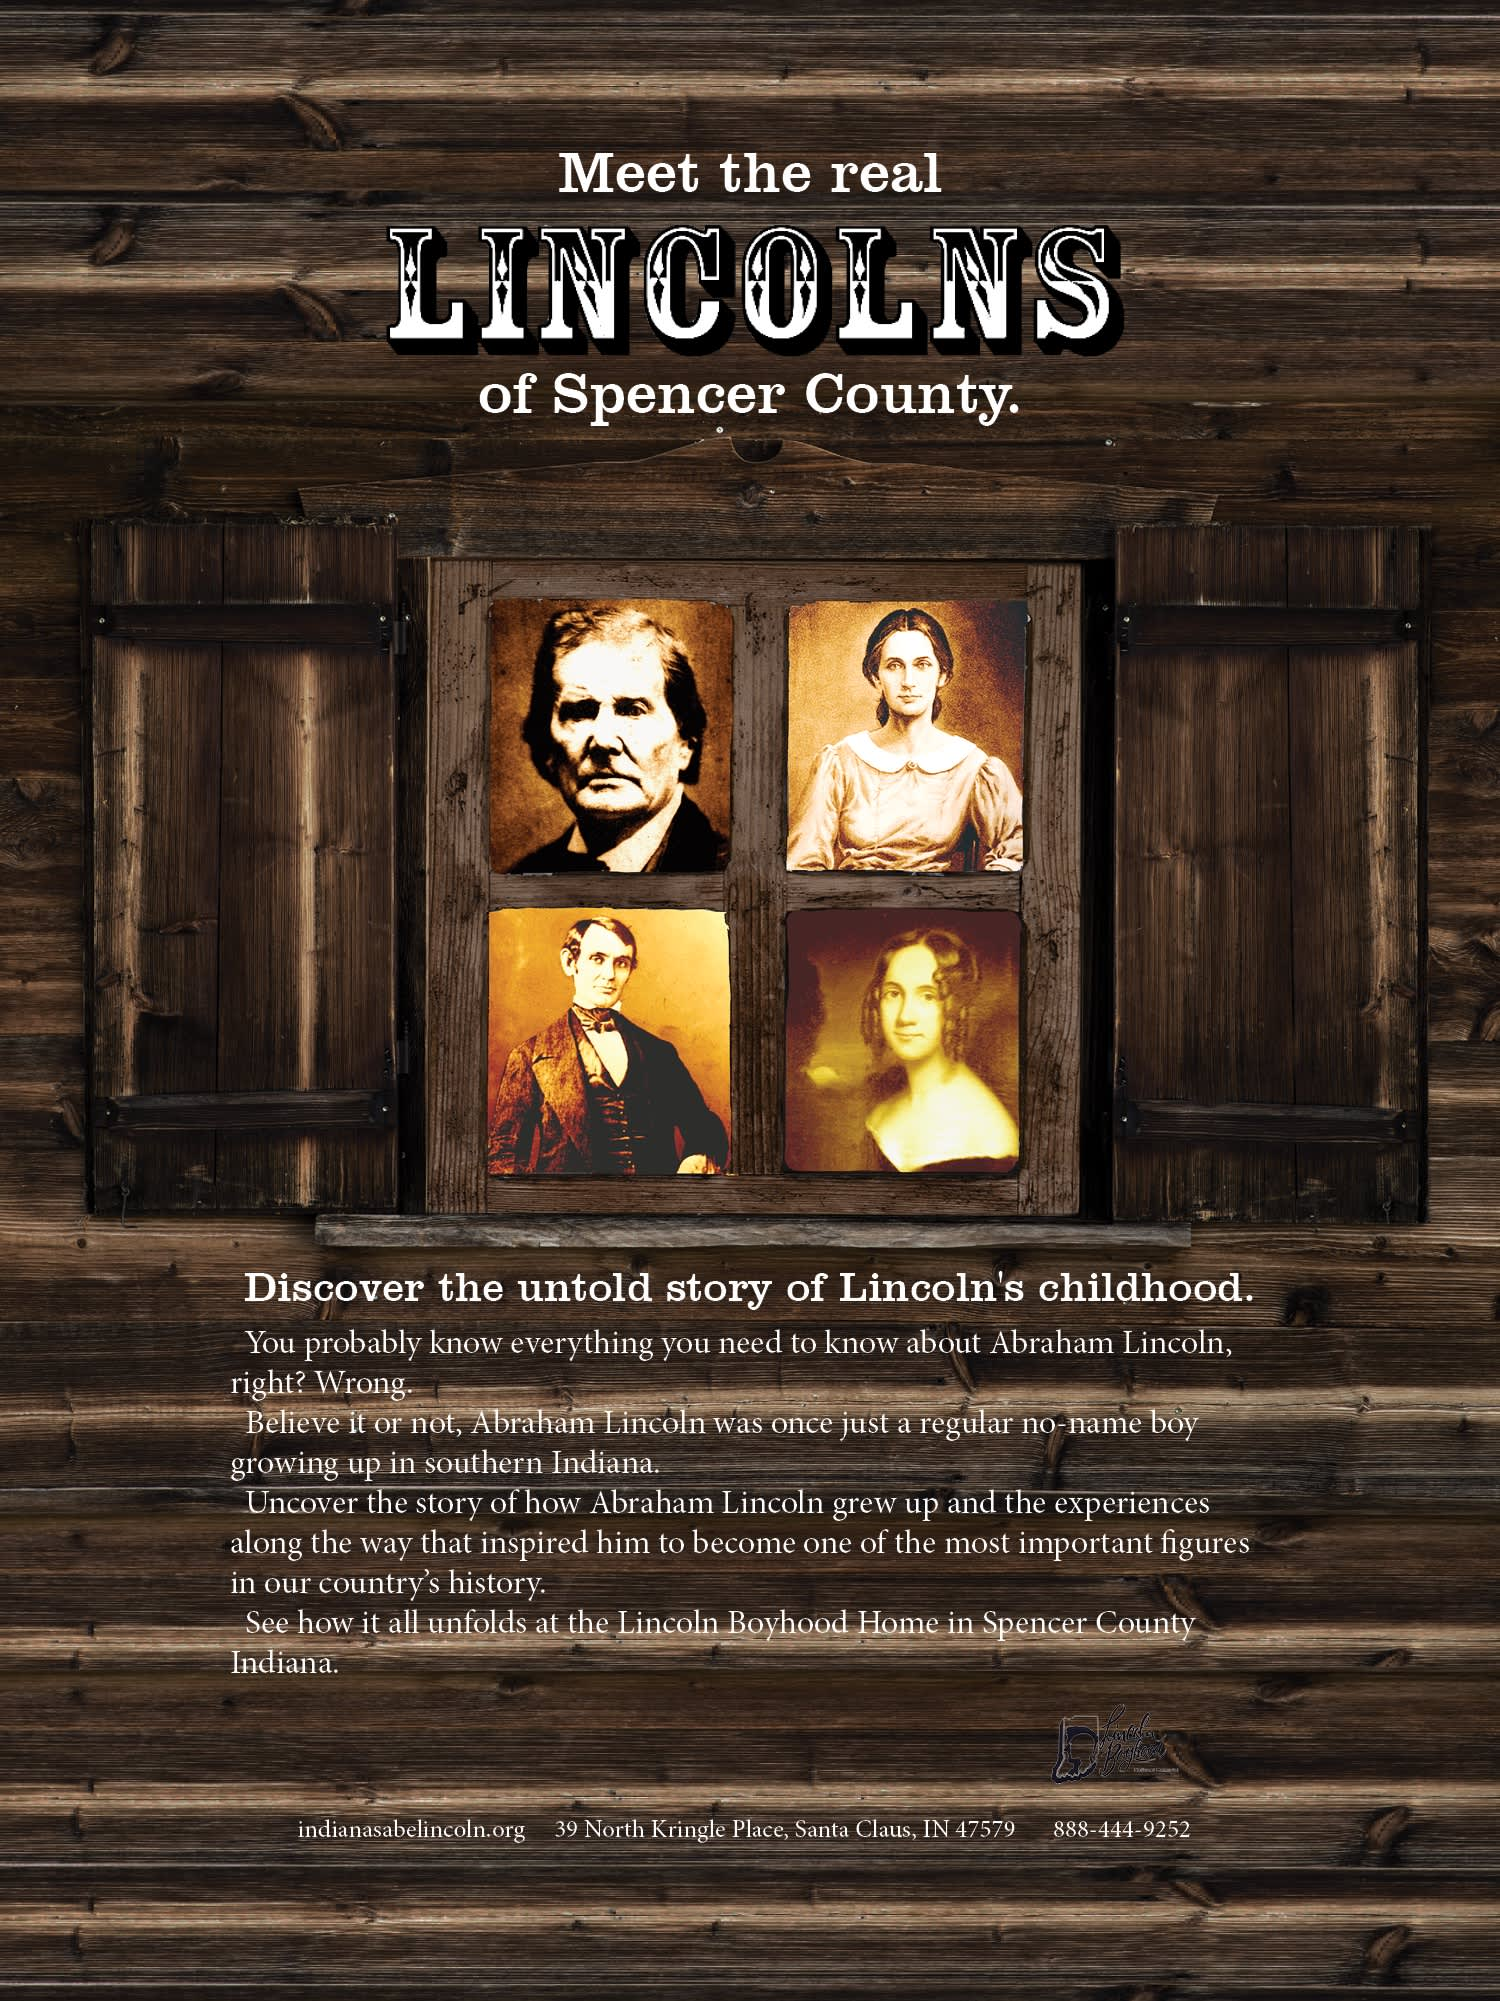 The Real Lincolns of Spencer County